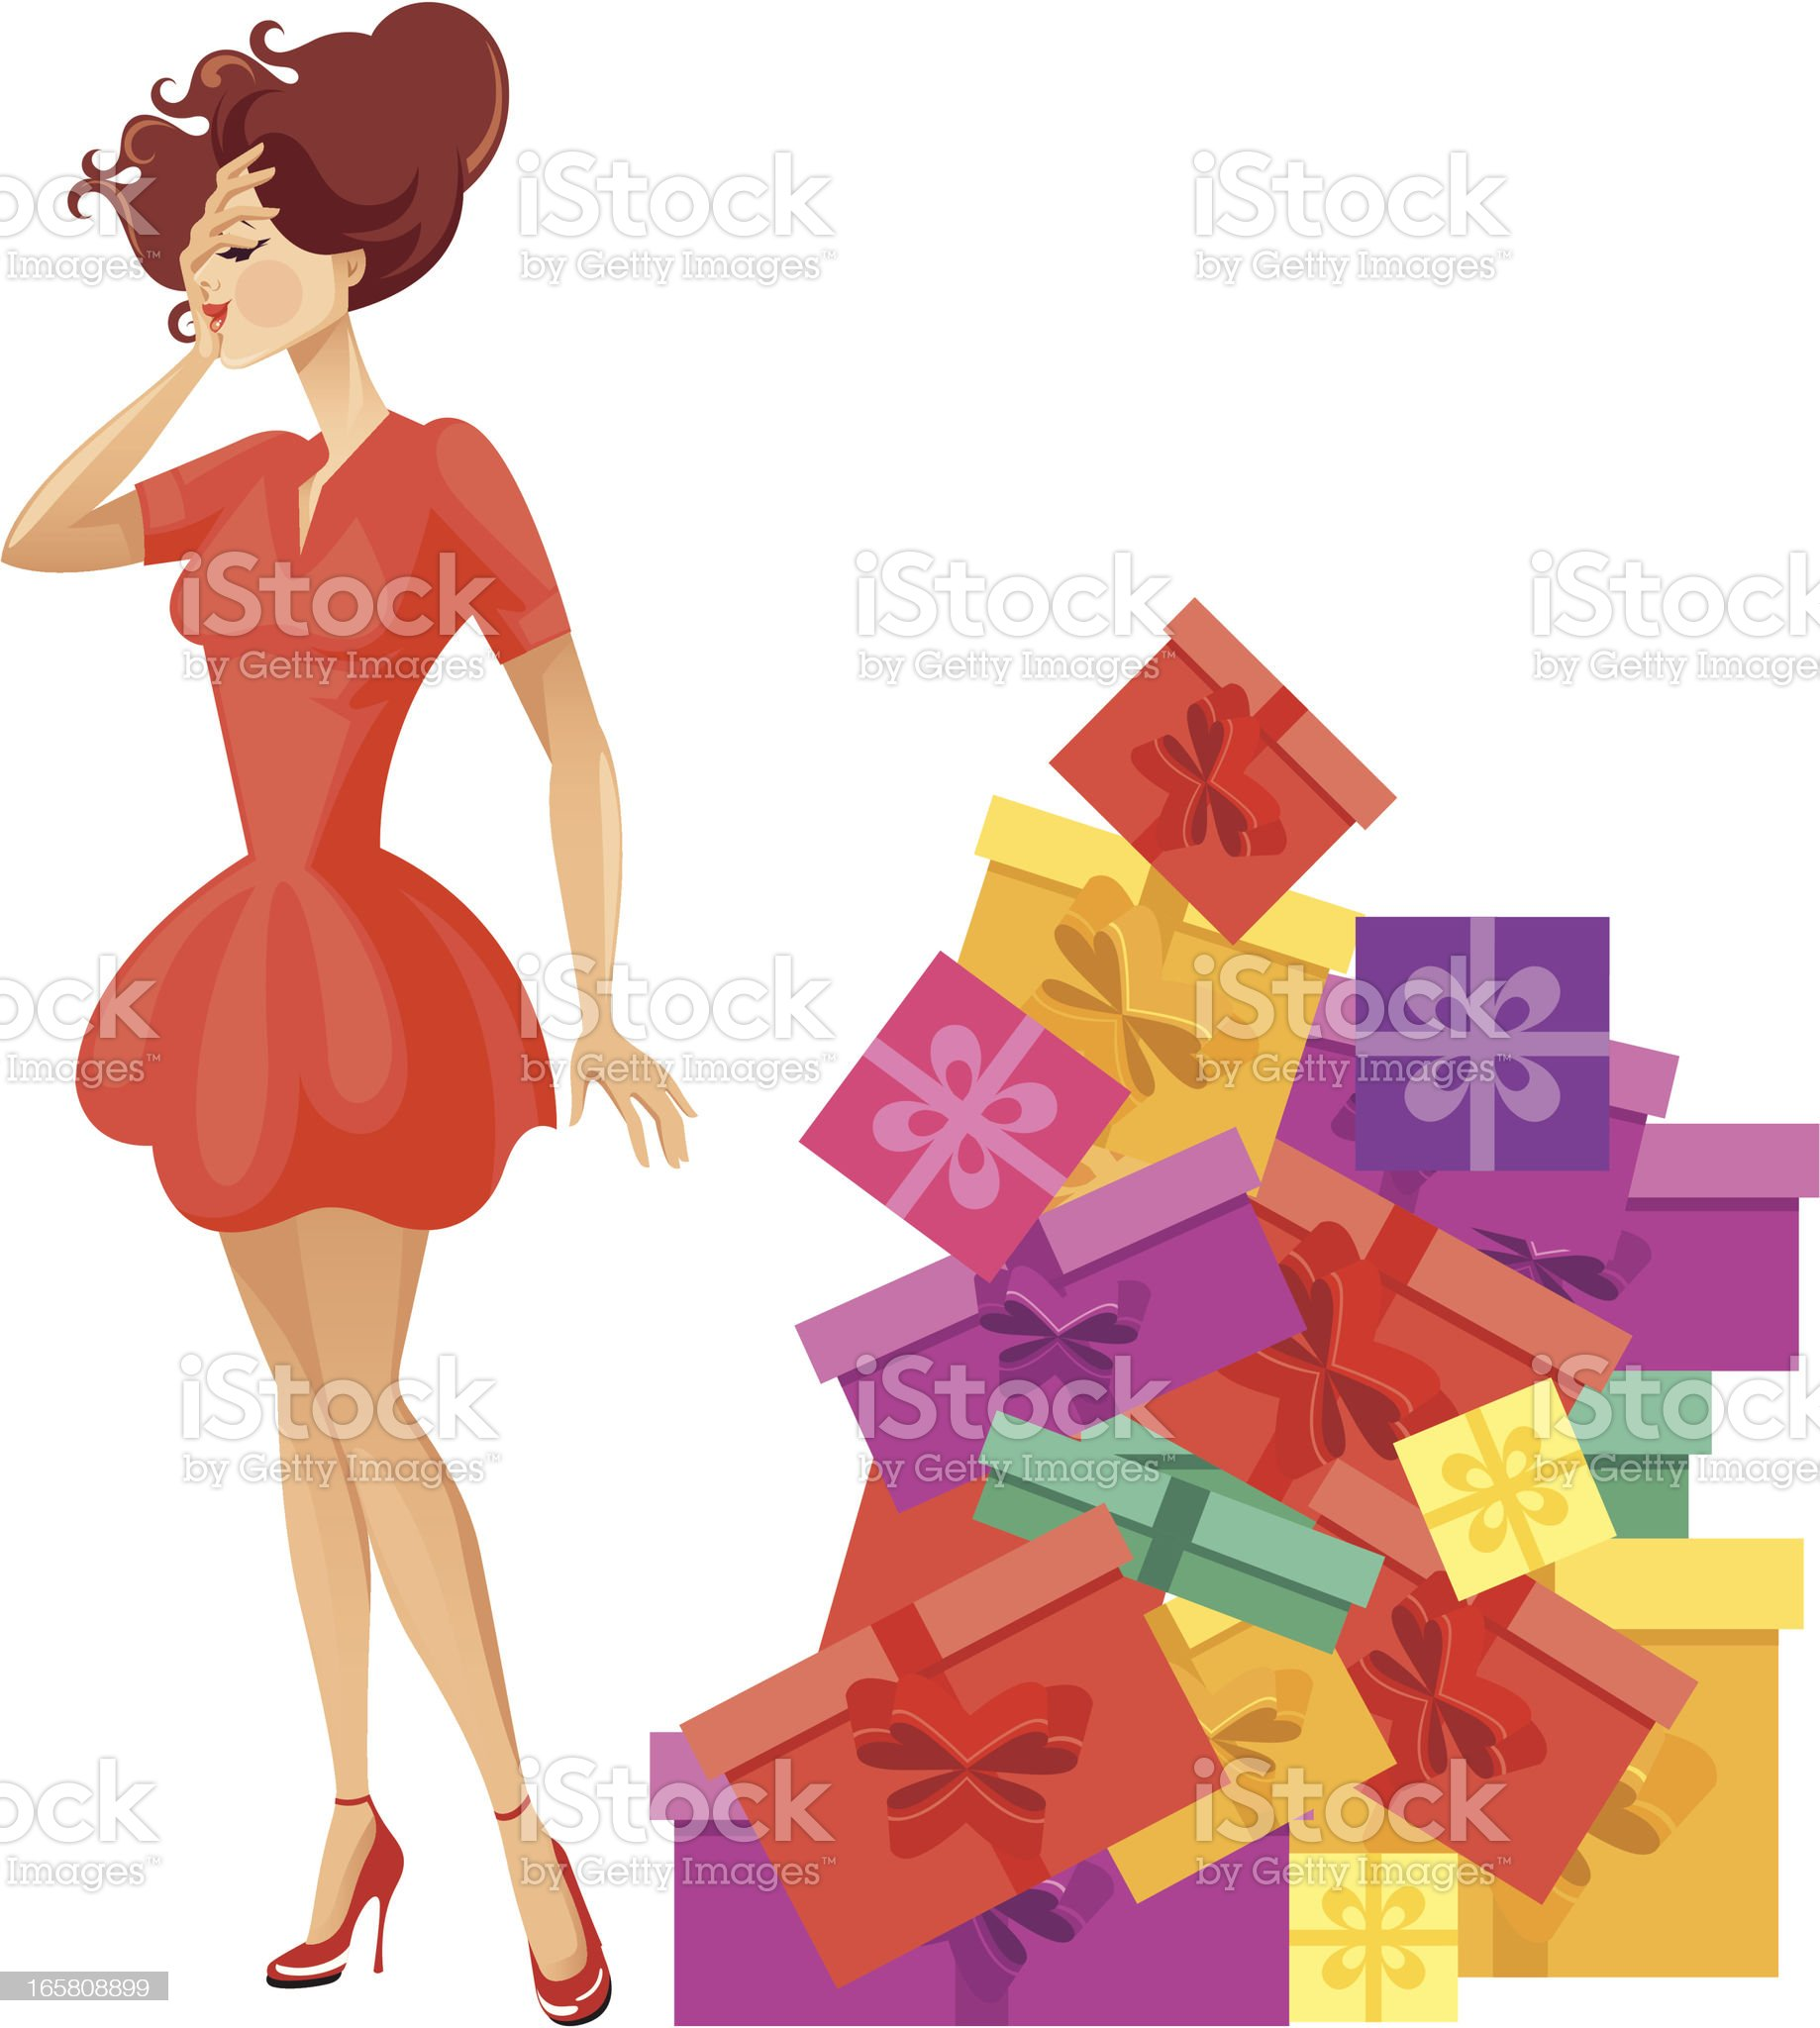 Surprise. royalty-free stock vector art